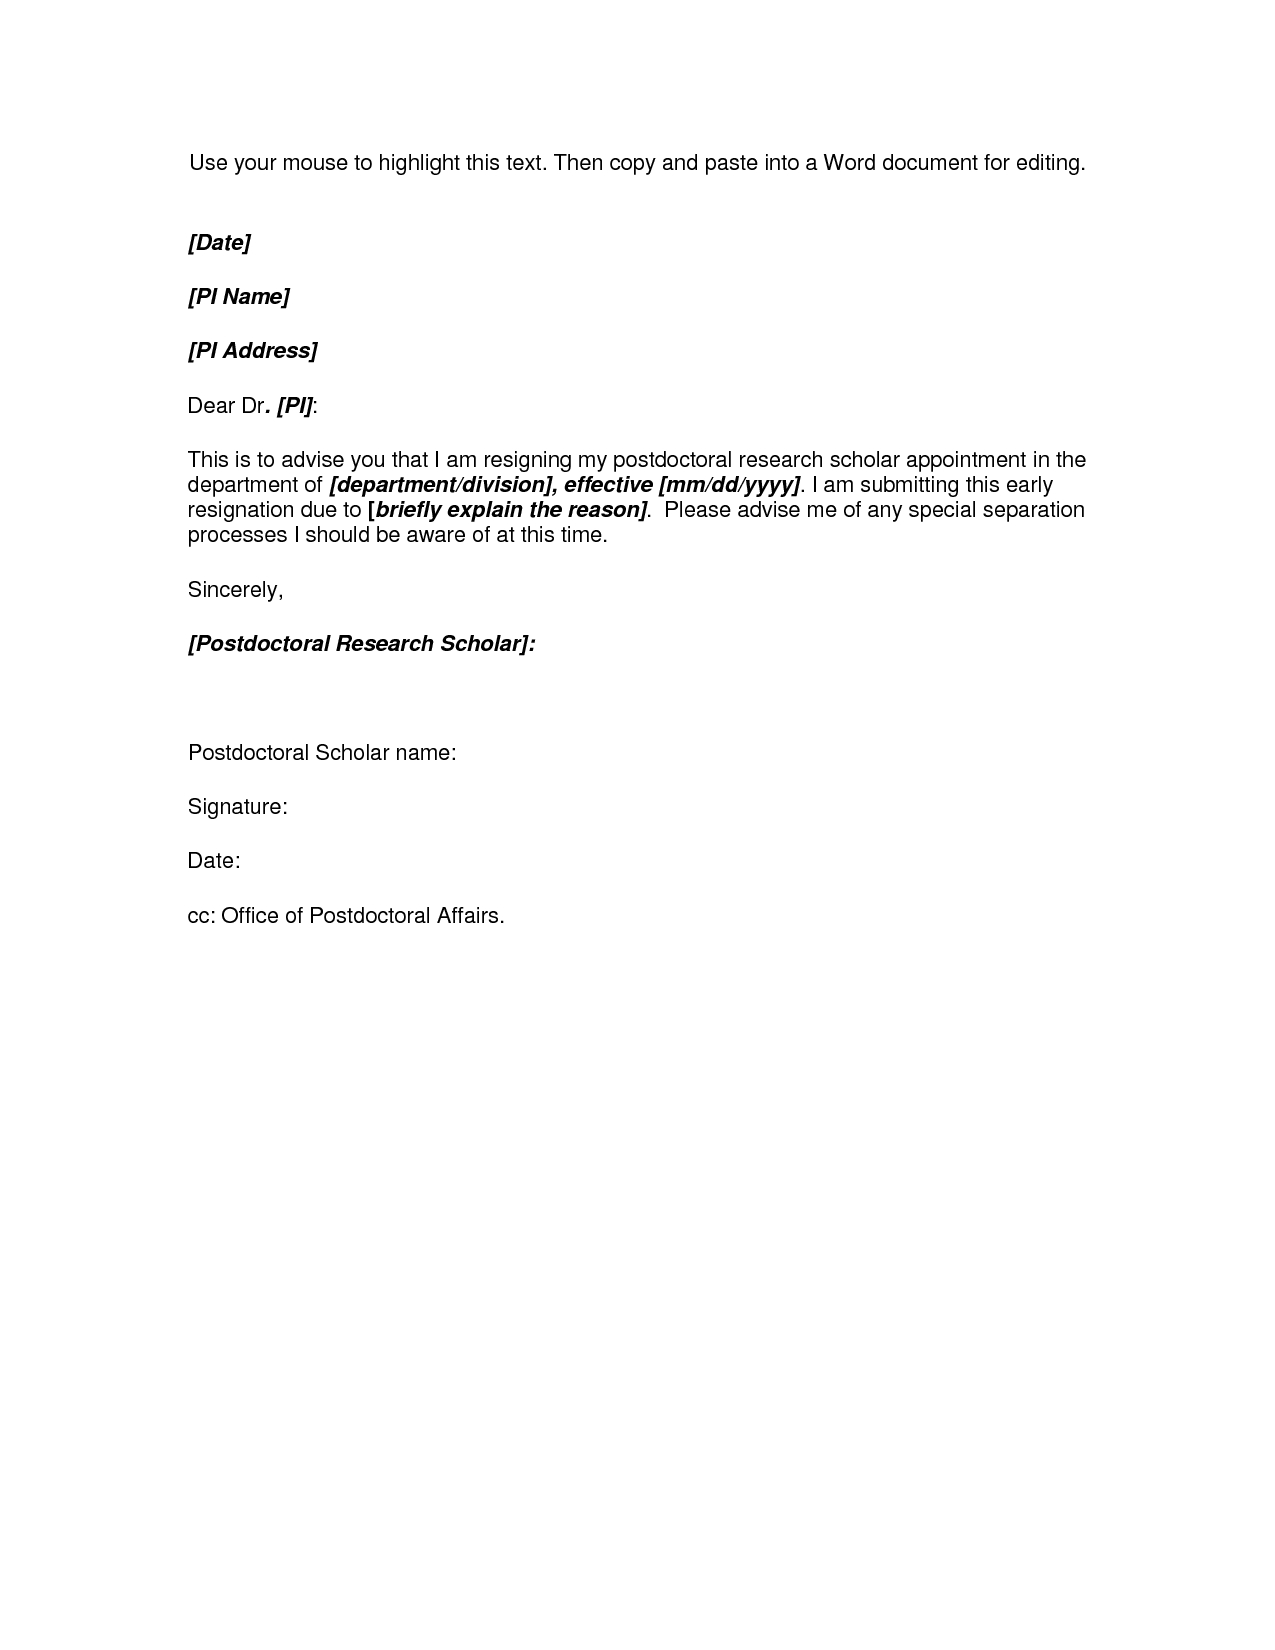 Resignation Letter Template - Microsoft Word Resignation Letter Template